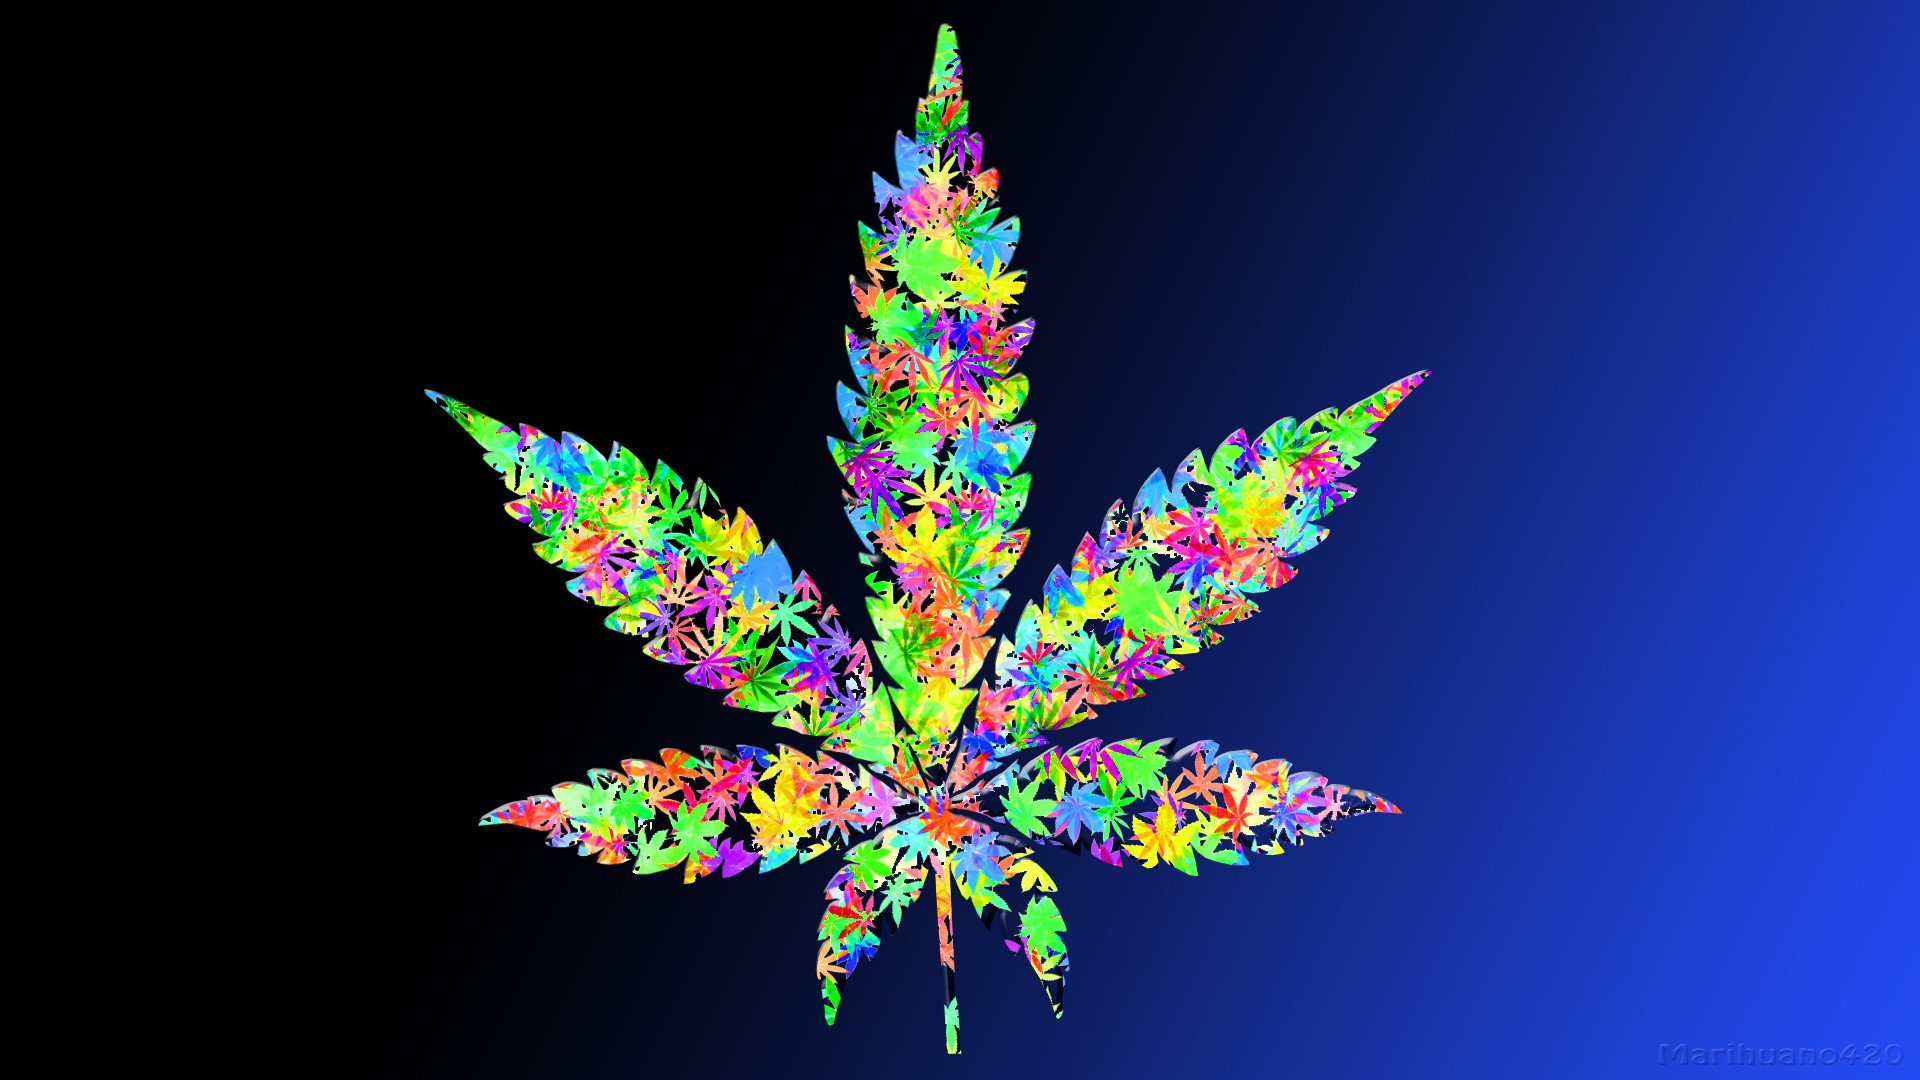 leaf drugs leaves marijuana weeds wallpaper 1920x1080